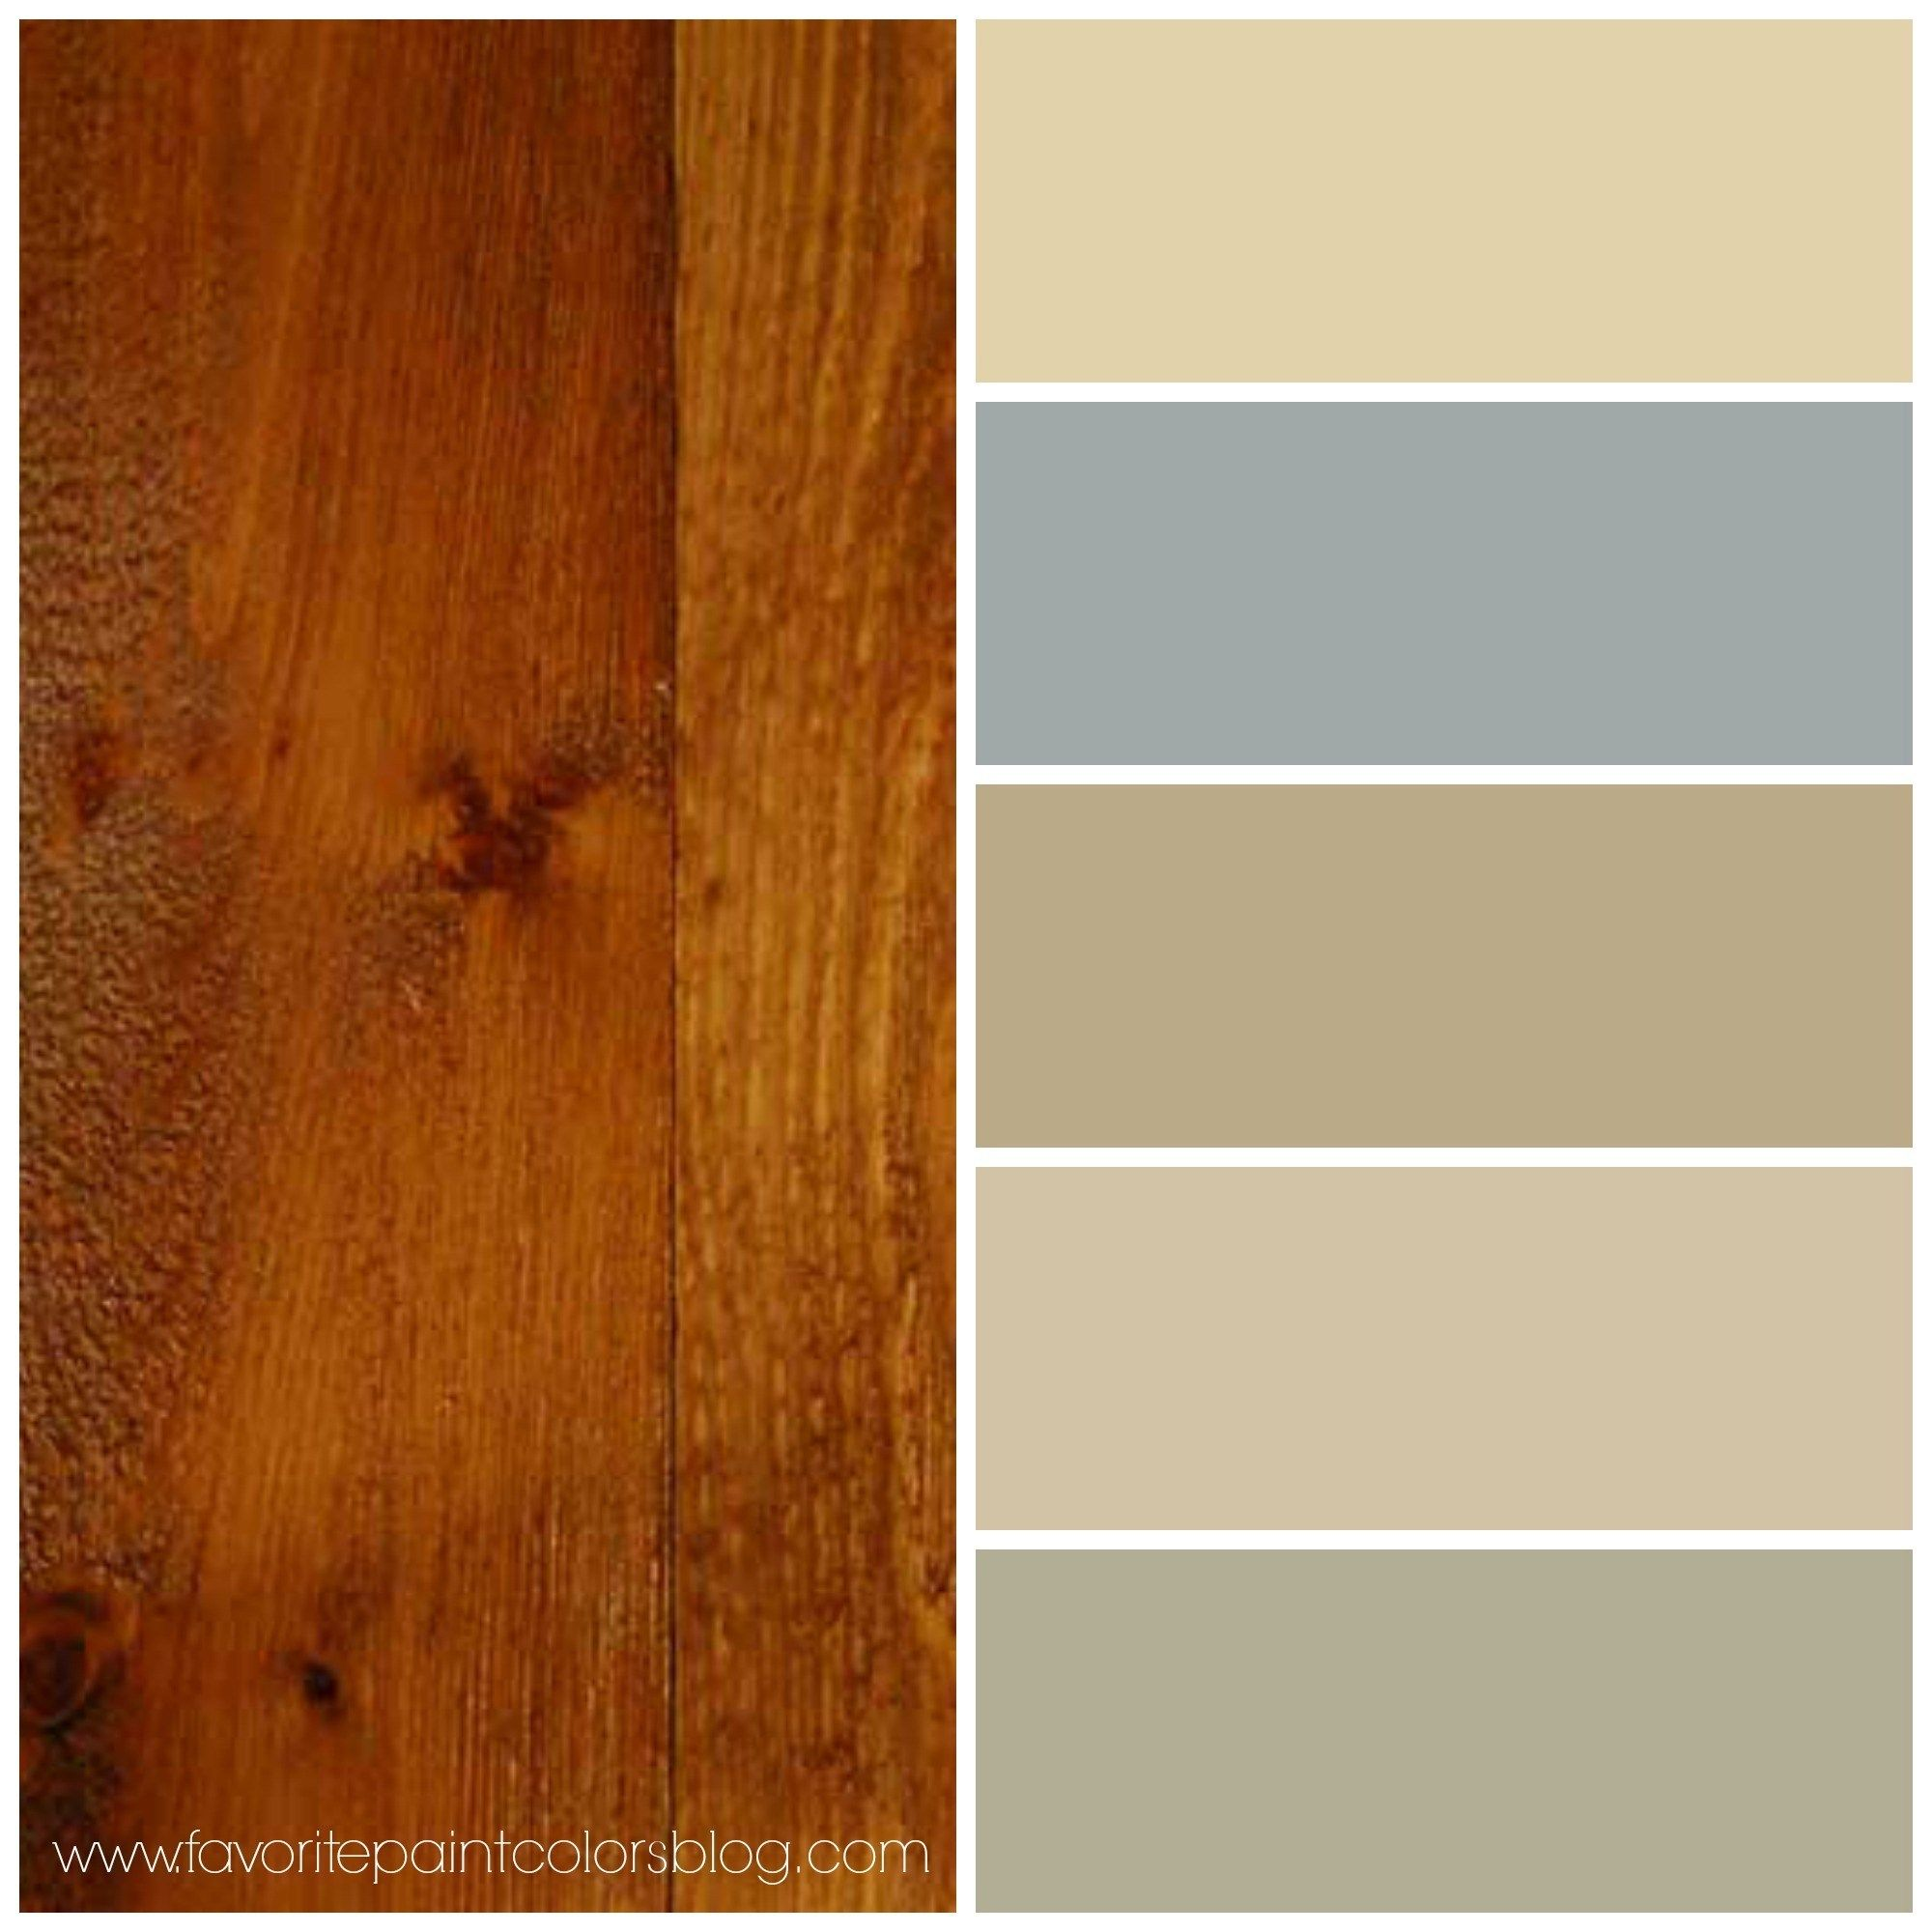 Reader S Question More Paint Colors To Go With Wood Red Pine Favorite Paint Colors Blog Wood Floor Colors Paint Colors For Living Room Floor Paint Colors